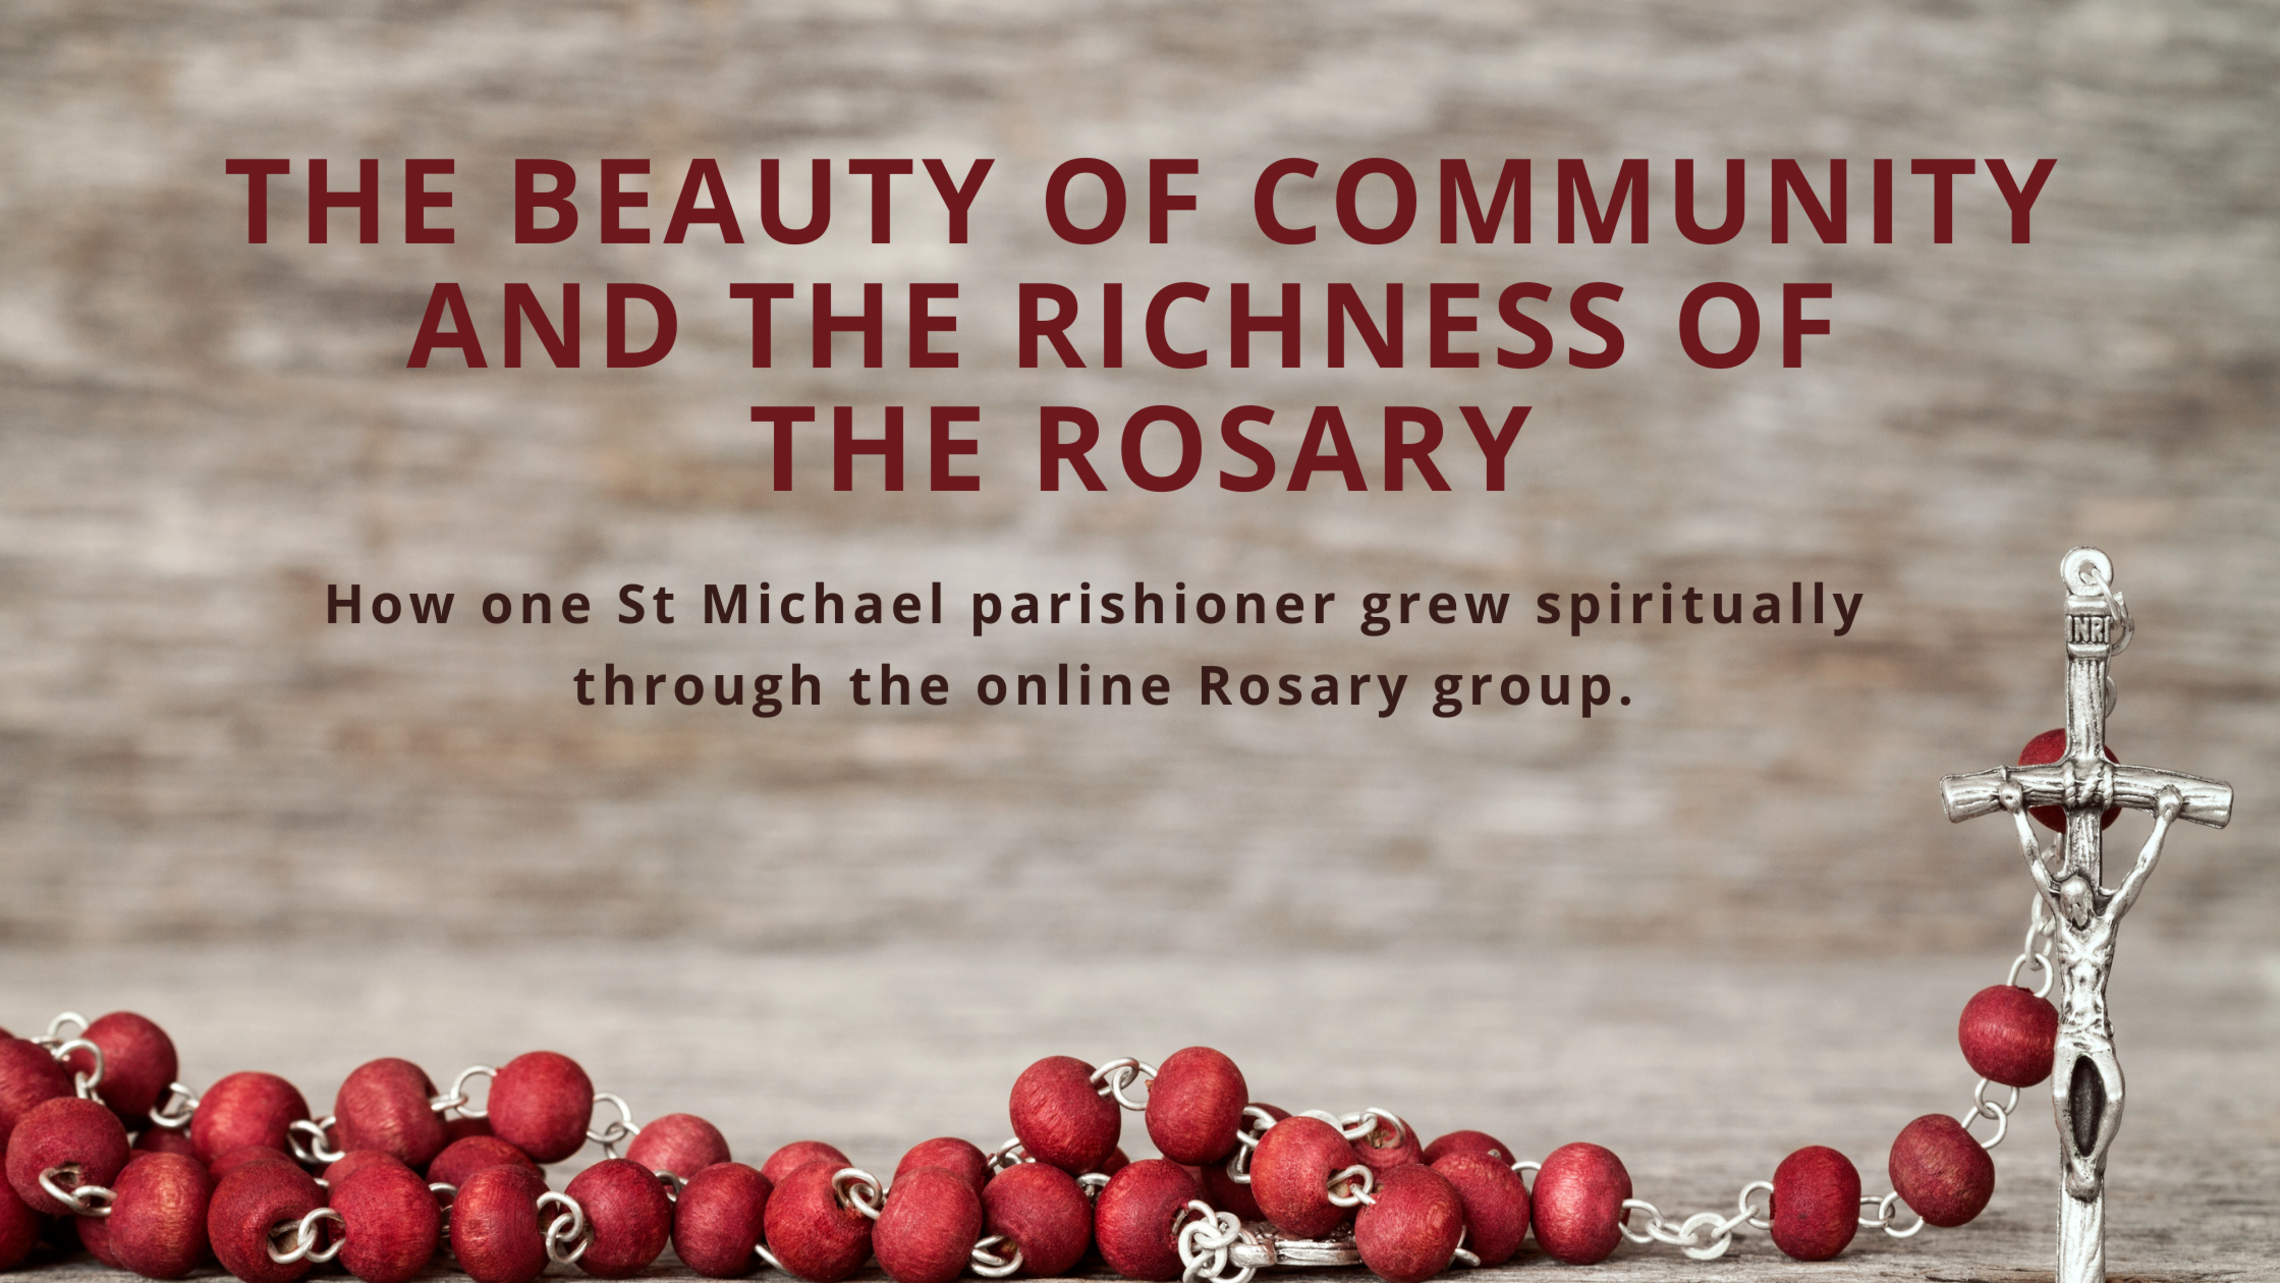 The Beauty Of Community And The Richness Of The Rosary